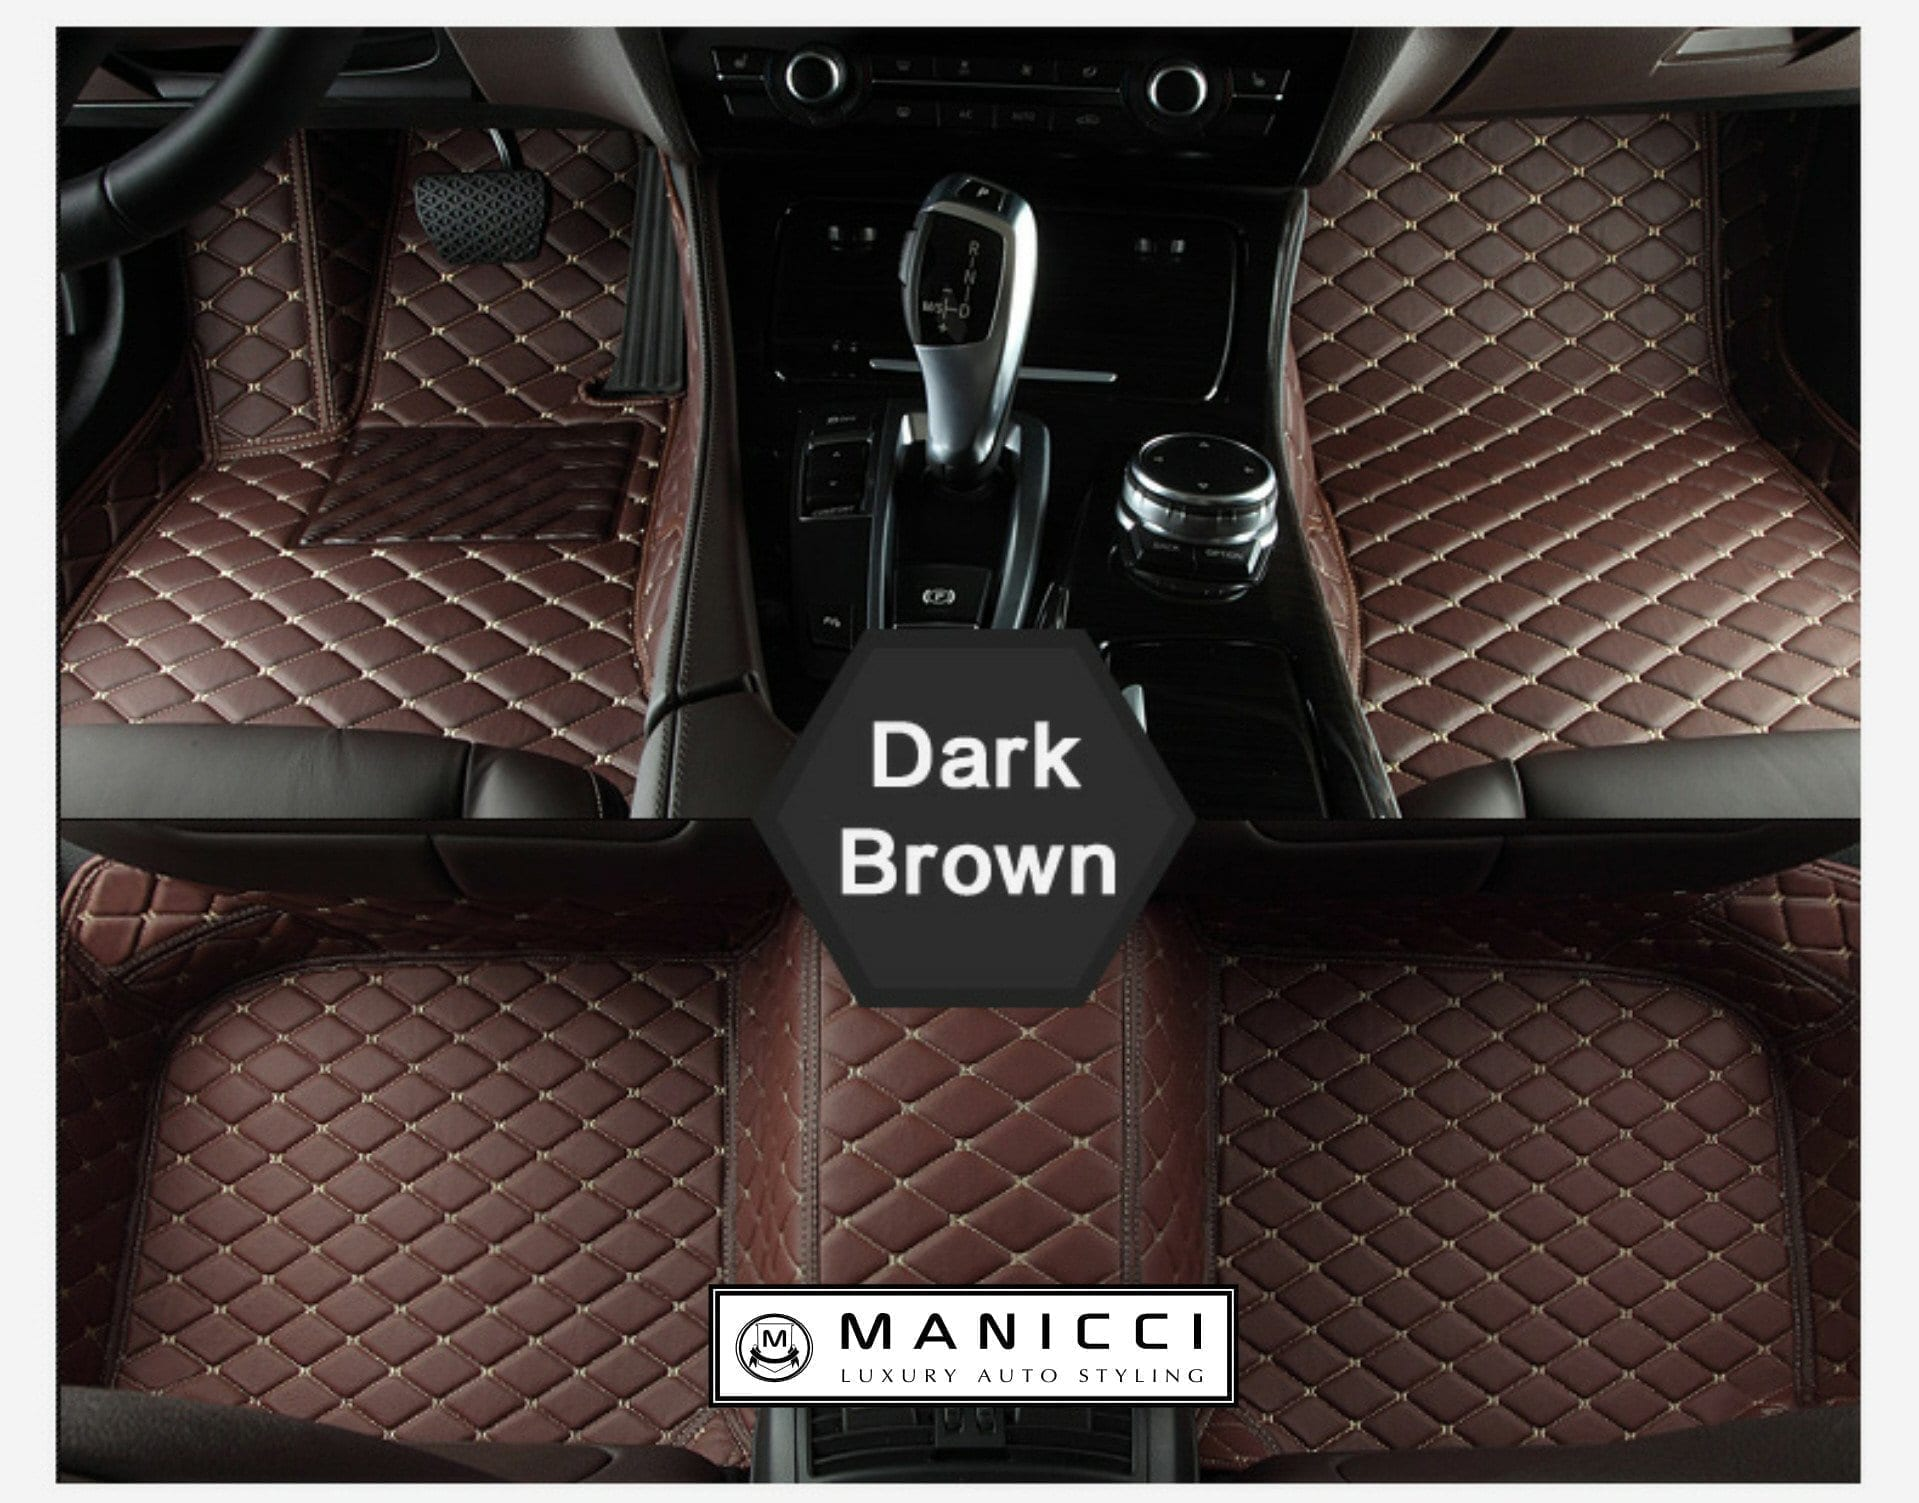 Floor mats dream cars - Dark Brown Diamond Stitch